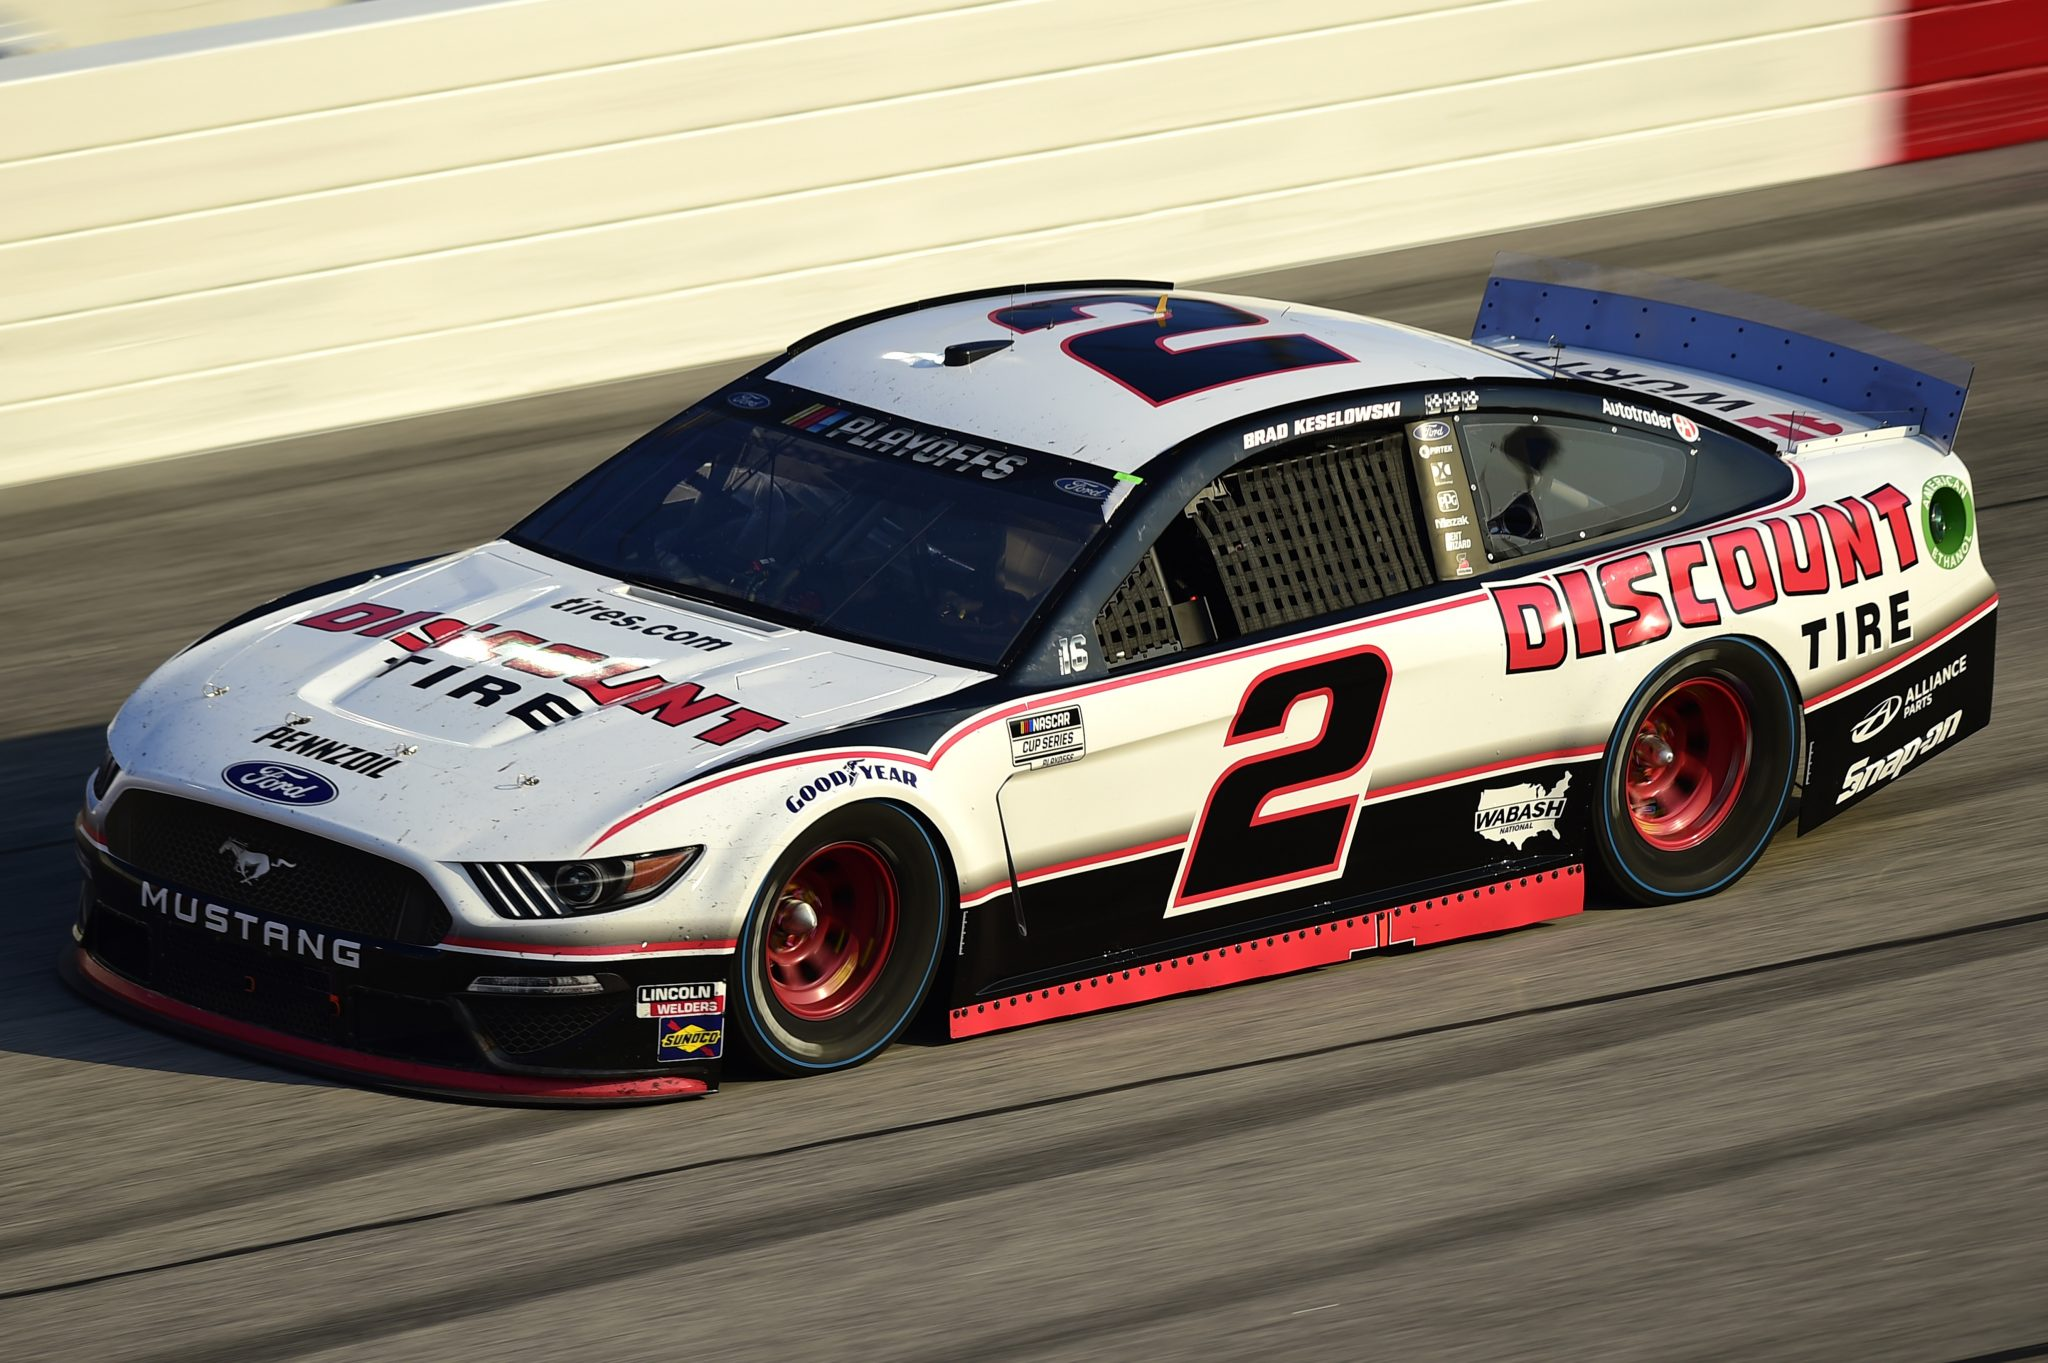 DARLINGTON, SOUTH CAROLINA - SEPTEMBER 06: Brad Keselowski, driver of the #2 Discount Tire Ford, drives during the NASCAR Cup Series Cook Out Southern 500 at Darlington Raceway on September 06, 2020 in Darlington, South Carolina. (Photo by Jared C. Tilton/Getty Images) | Getty Images